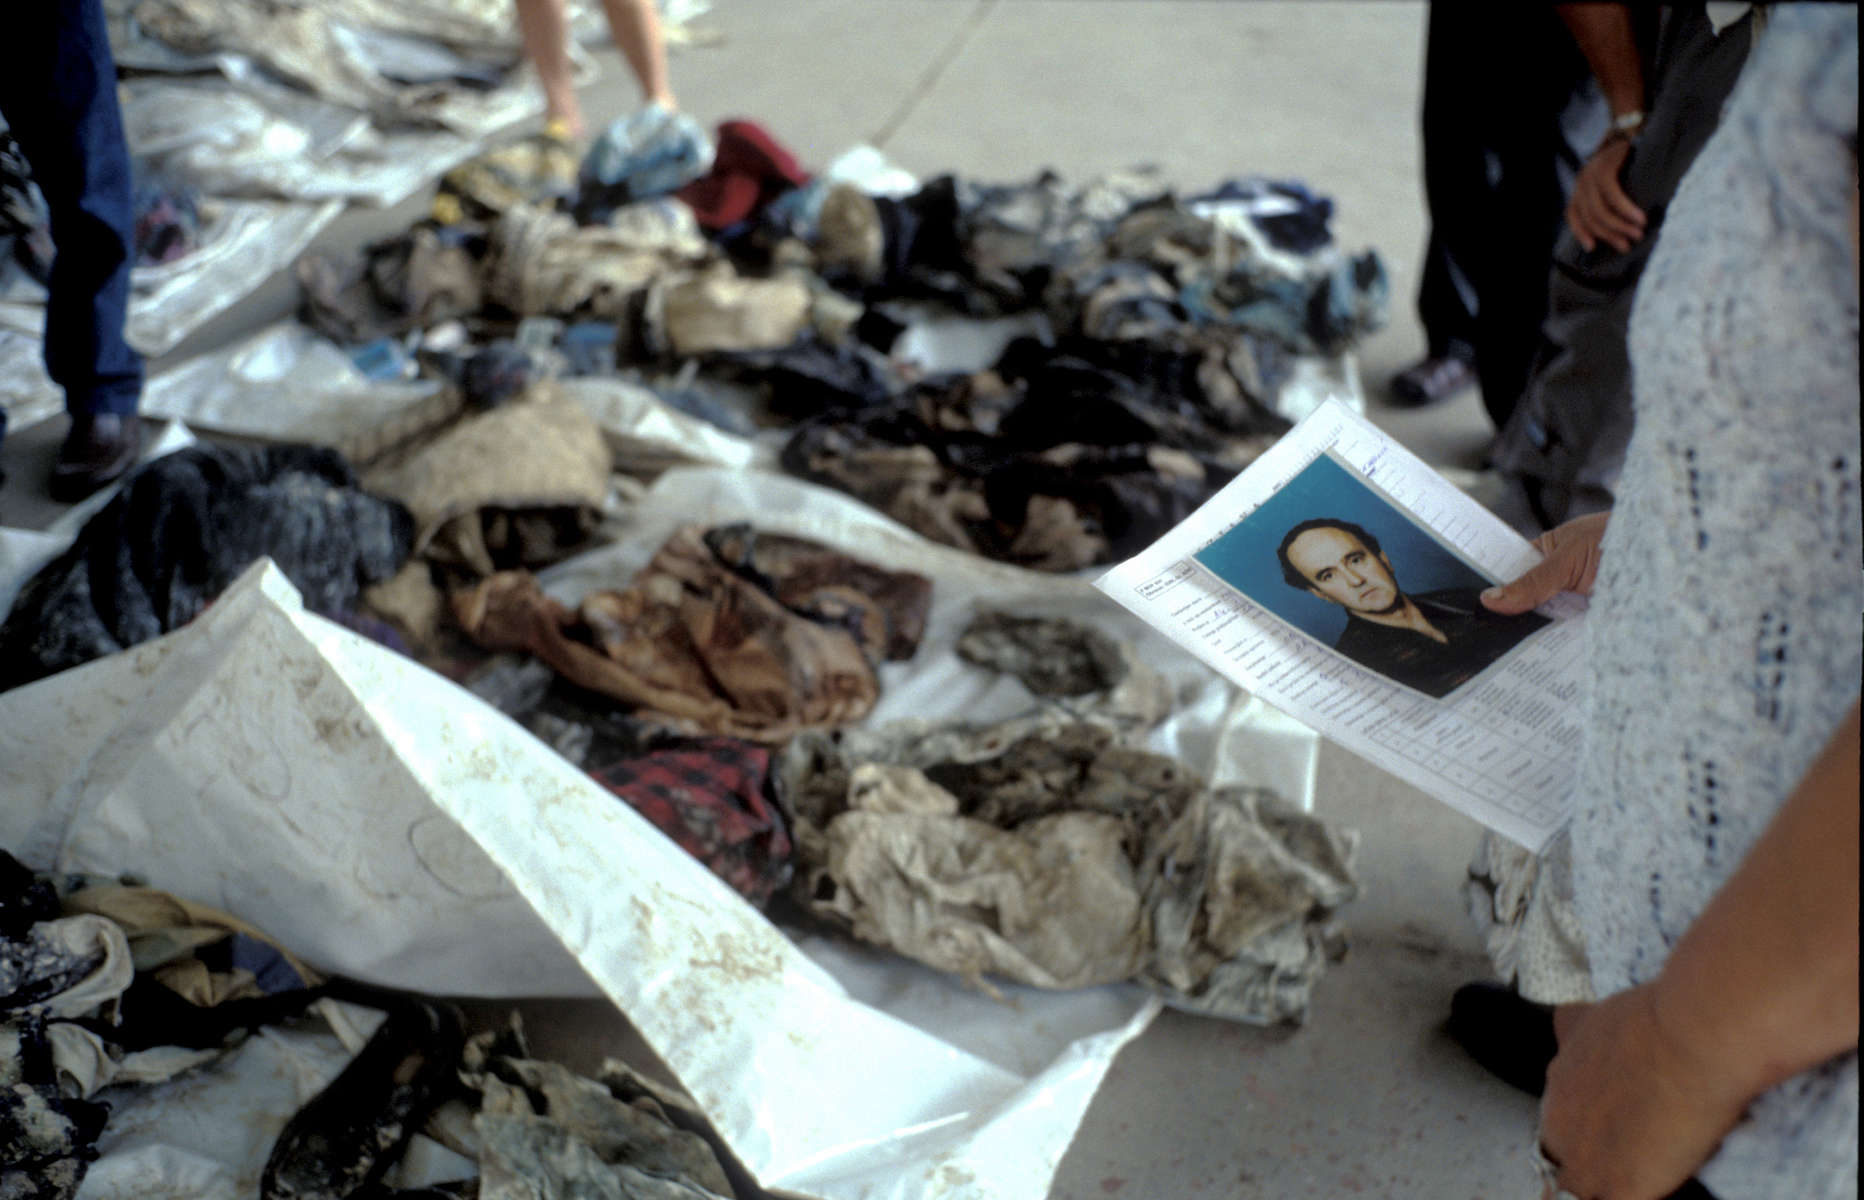 During a public viewing of exhumed remains, a woman holds a photograph of her brother, who disappeared during the 1992 \{quote}ethnic cleansing\{quote} campaign waged by Serbs against their Muslim neighbors. At her feet is a pile of clothes found with bodies exhumed from a mass grave.